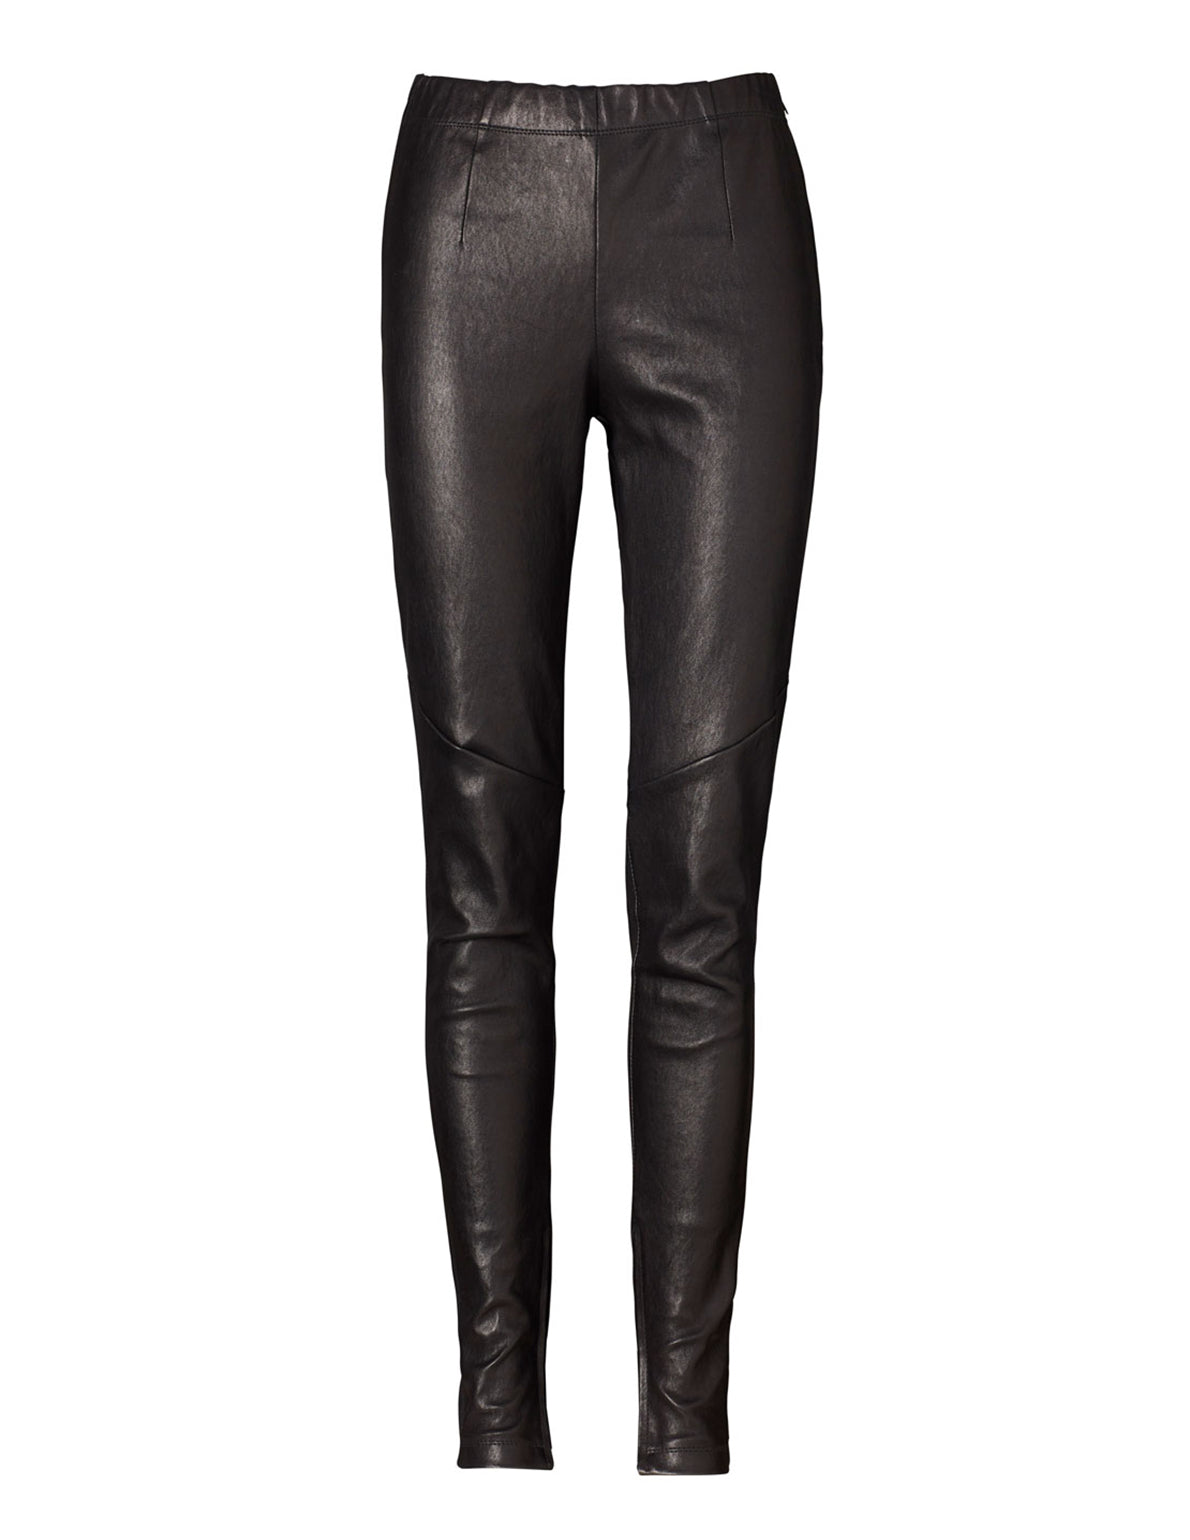 Minimalist Leather Leggings - Full Length